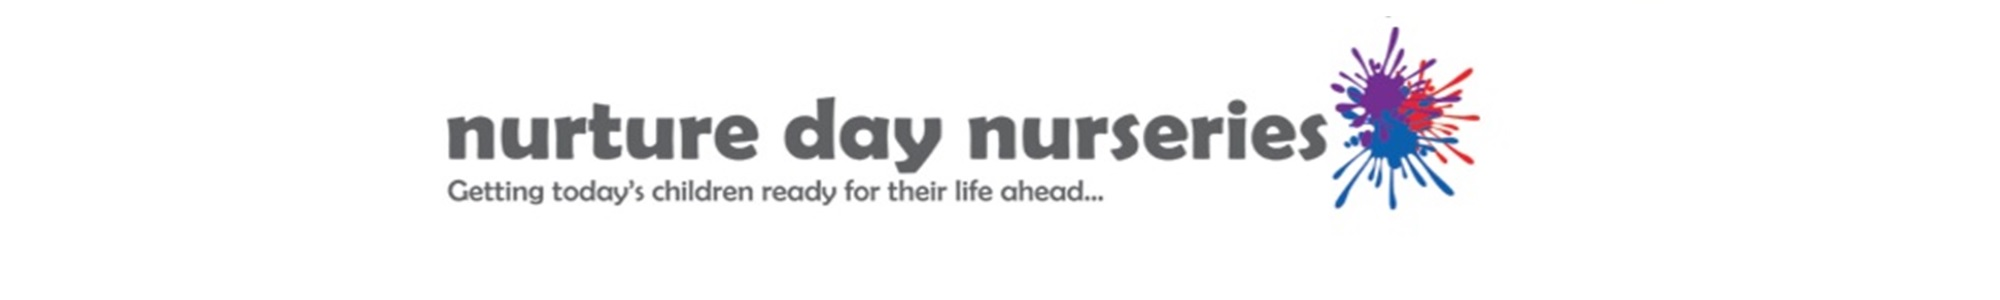 Nurture Day Nurseries Ltd.